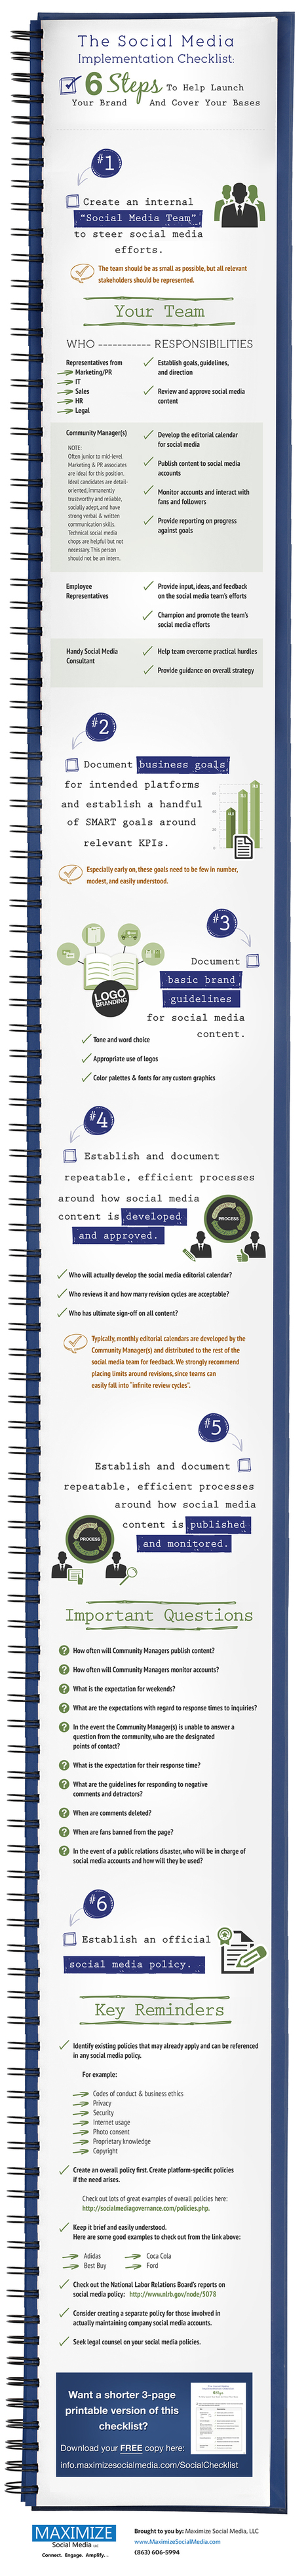 Social Media Implementation Checklist | Internet Presence | Scoop.it